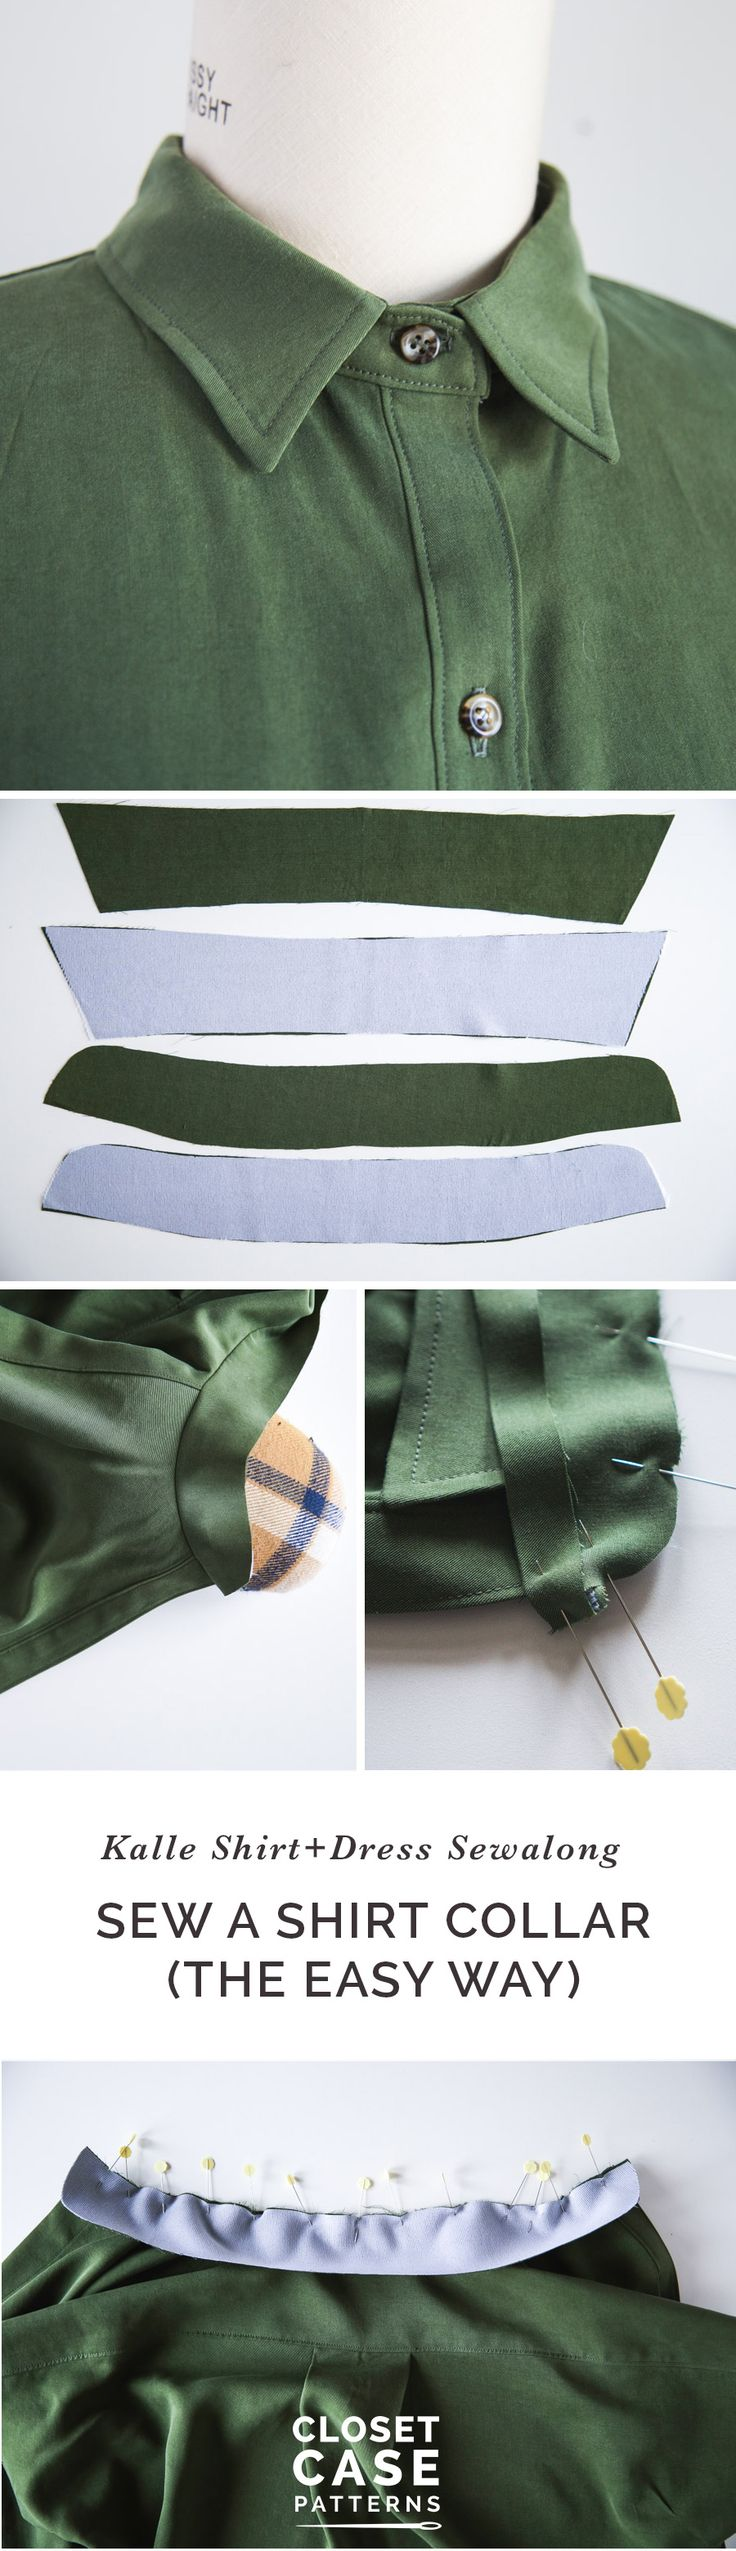 The easy way to sew a shirt collar!! // by Closet Case Patterns via @closetcasepatt